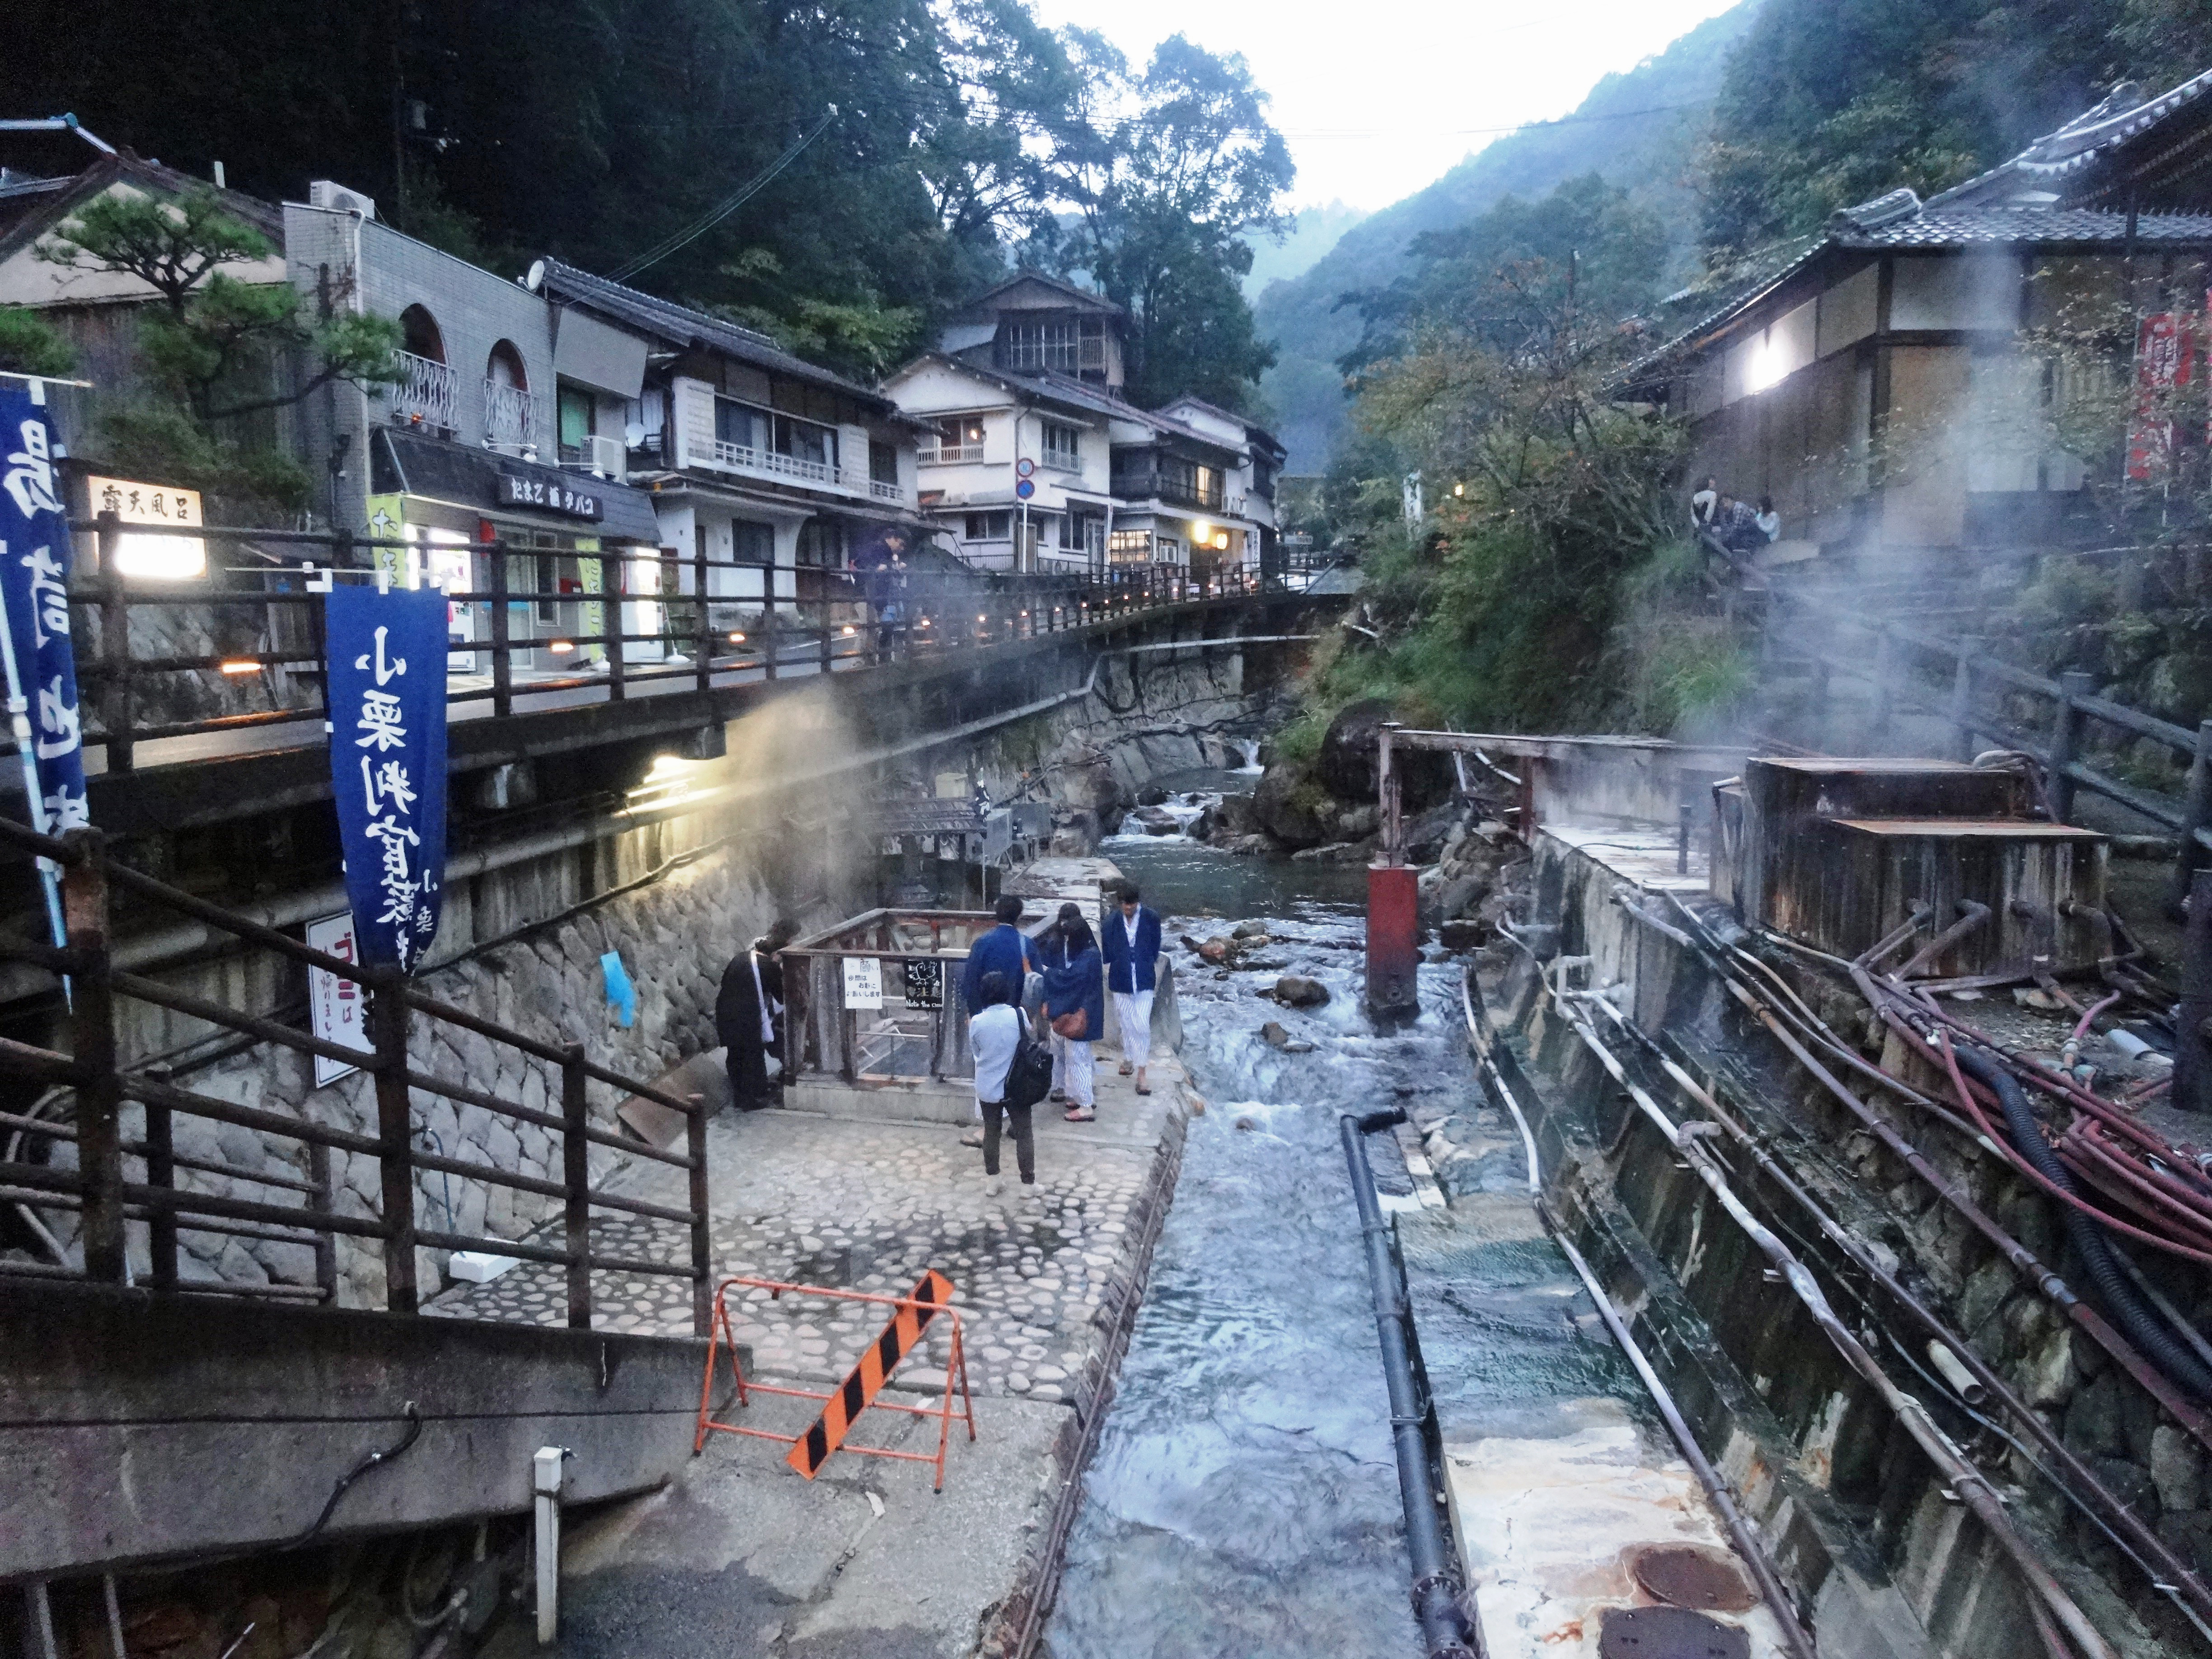 Wakayama Japan  city photos gallery : Soaking up the very best of Wakayama's hot springs | The Japan Times